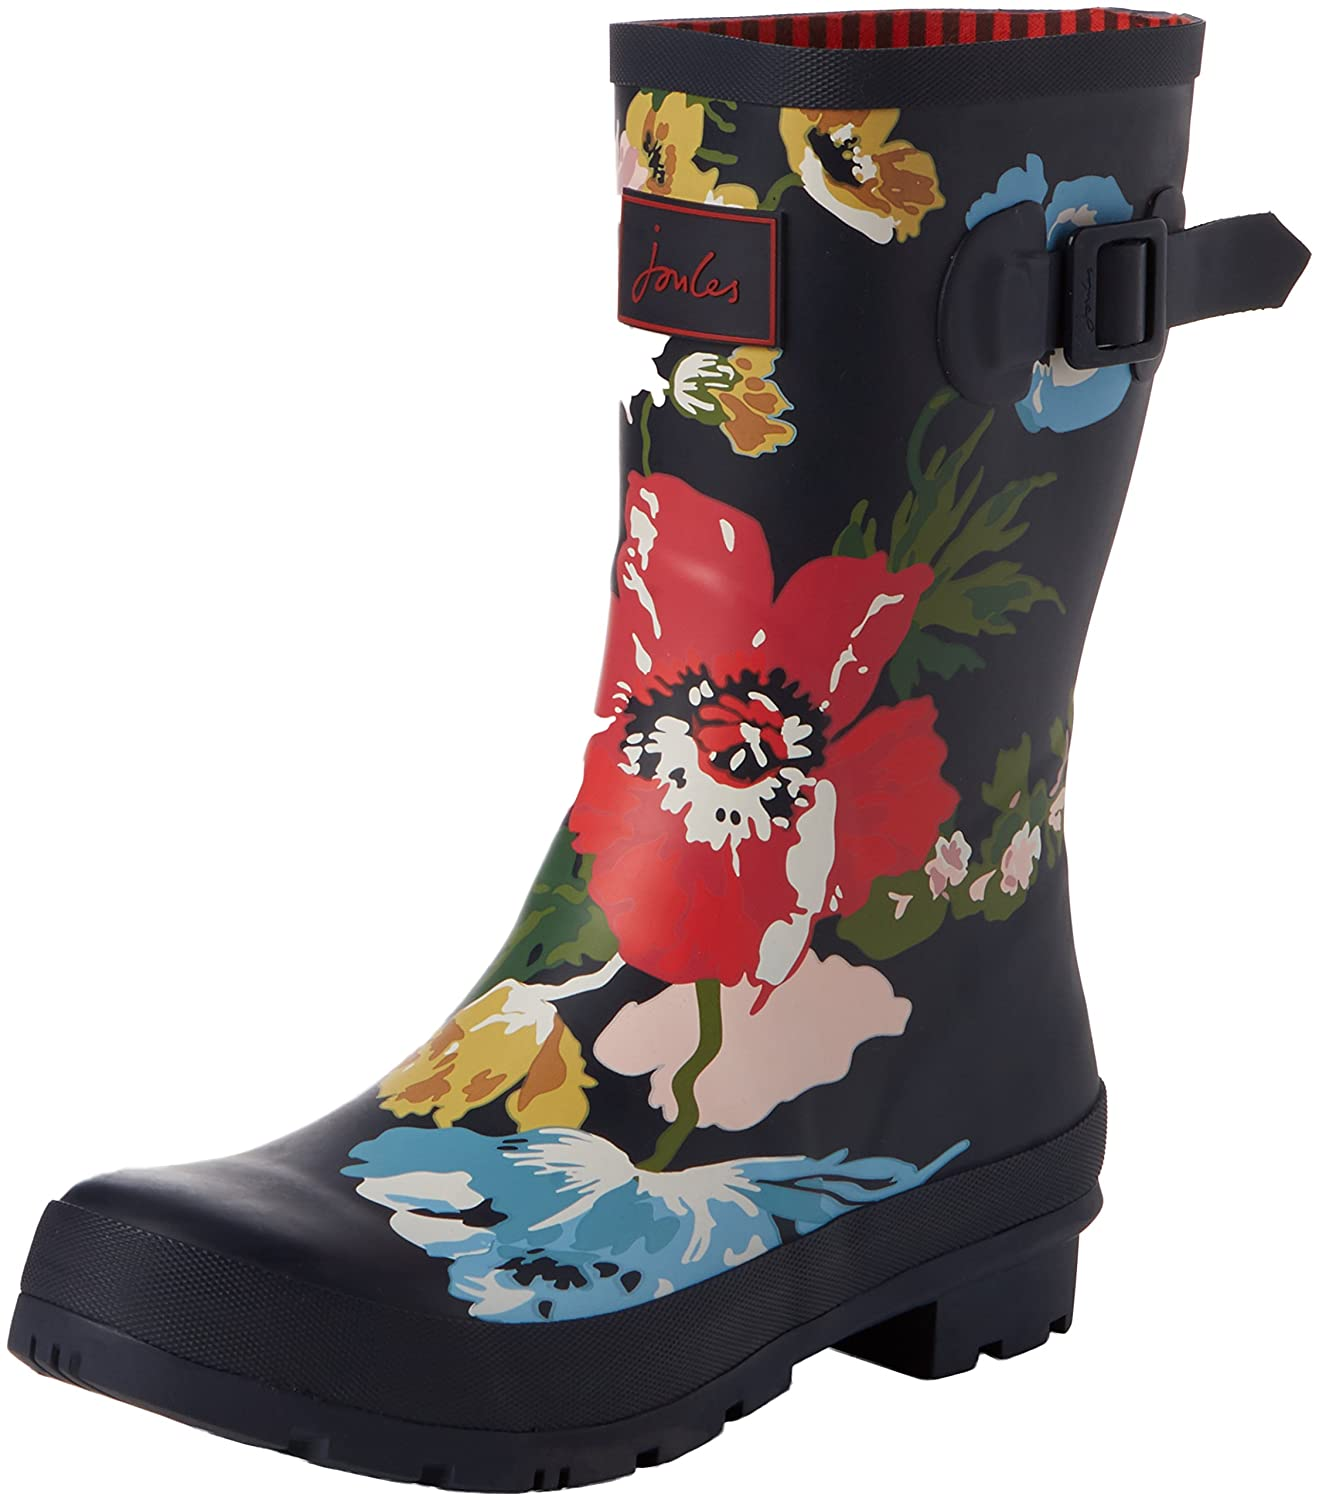 Joules Women's Molly Welly Rain Boot B06XGMGRLC 9 B(M) US|French Navy Posy